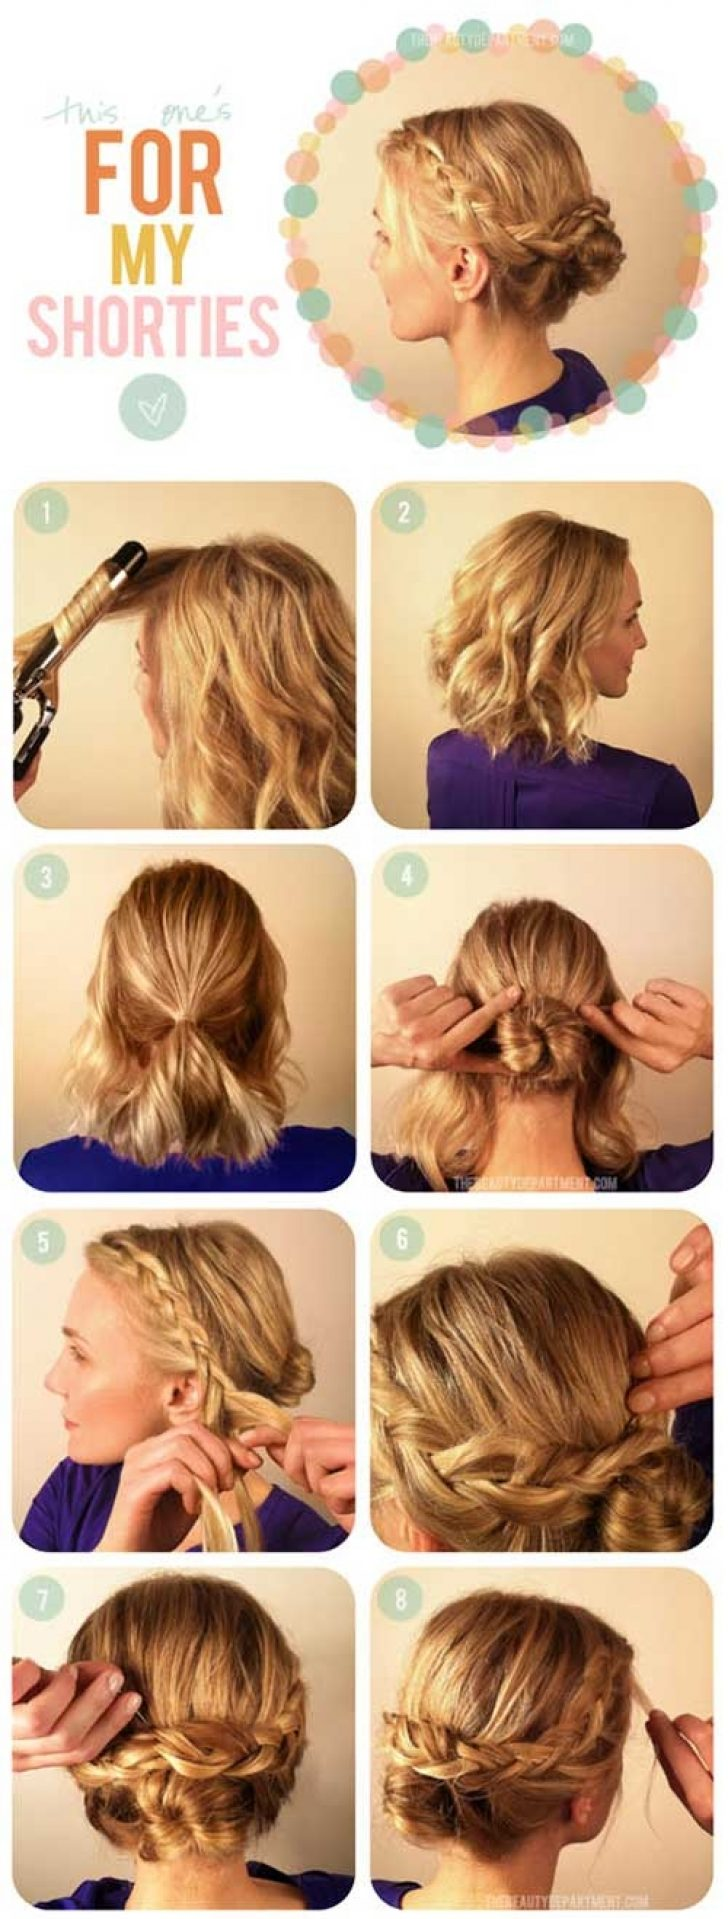 Permalink to Fresh Easy Hairstyles For Very Short Hair To Do At Home Step By Step